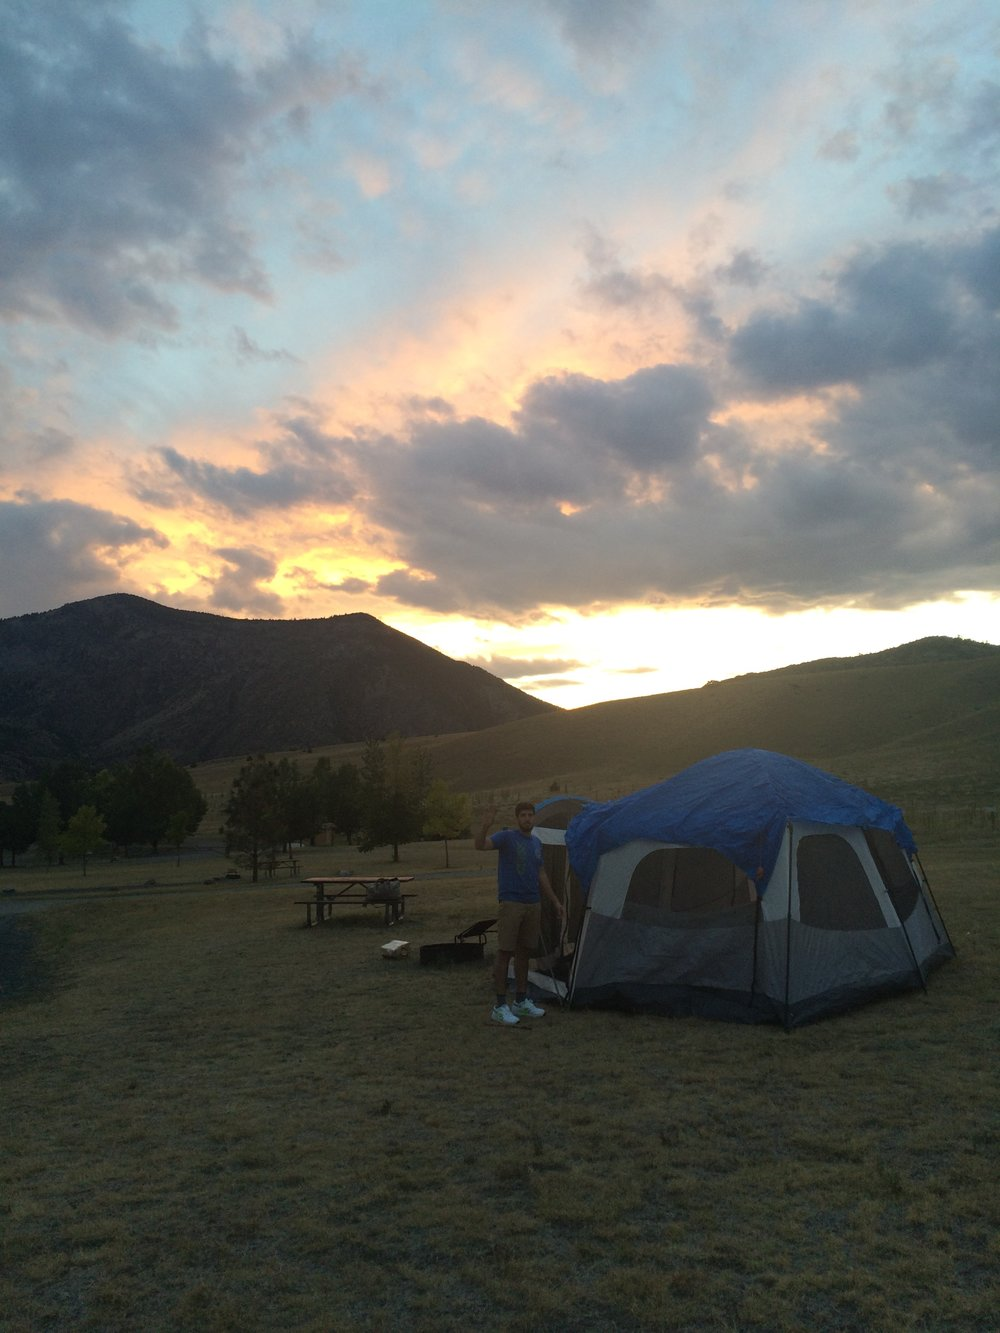 Matt and I camping and Lewis and Clark Caverns State Park in Montana, September 2015